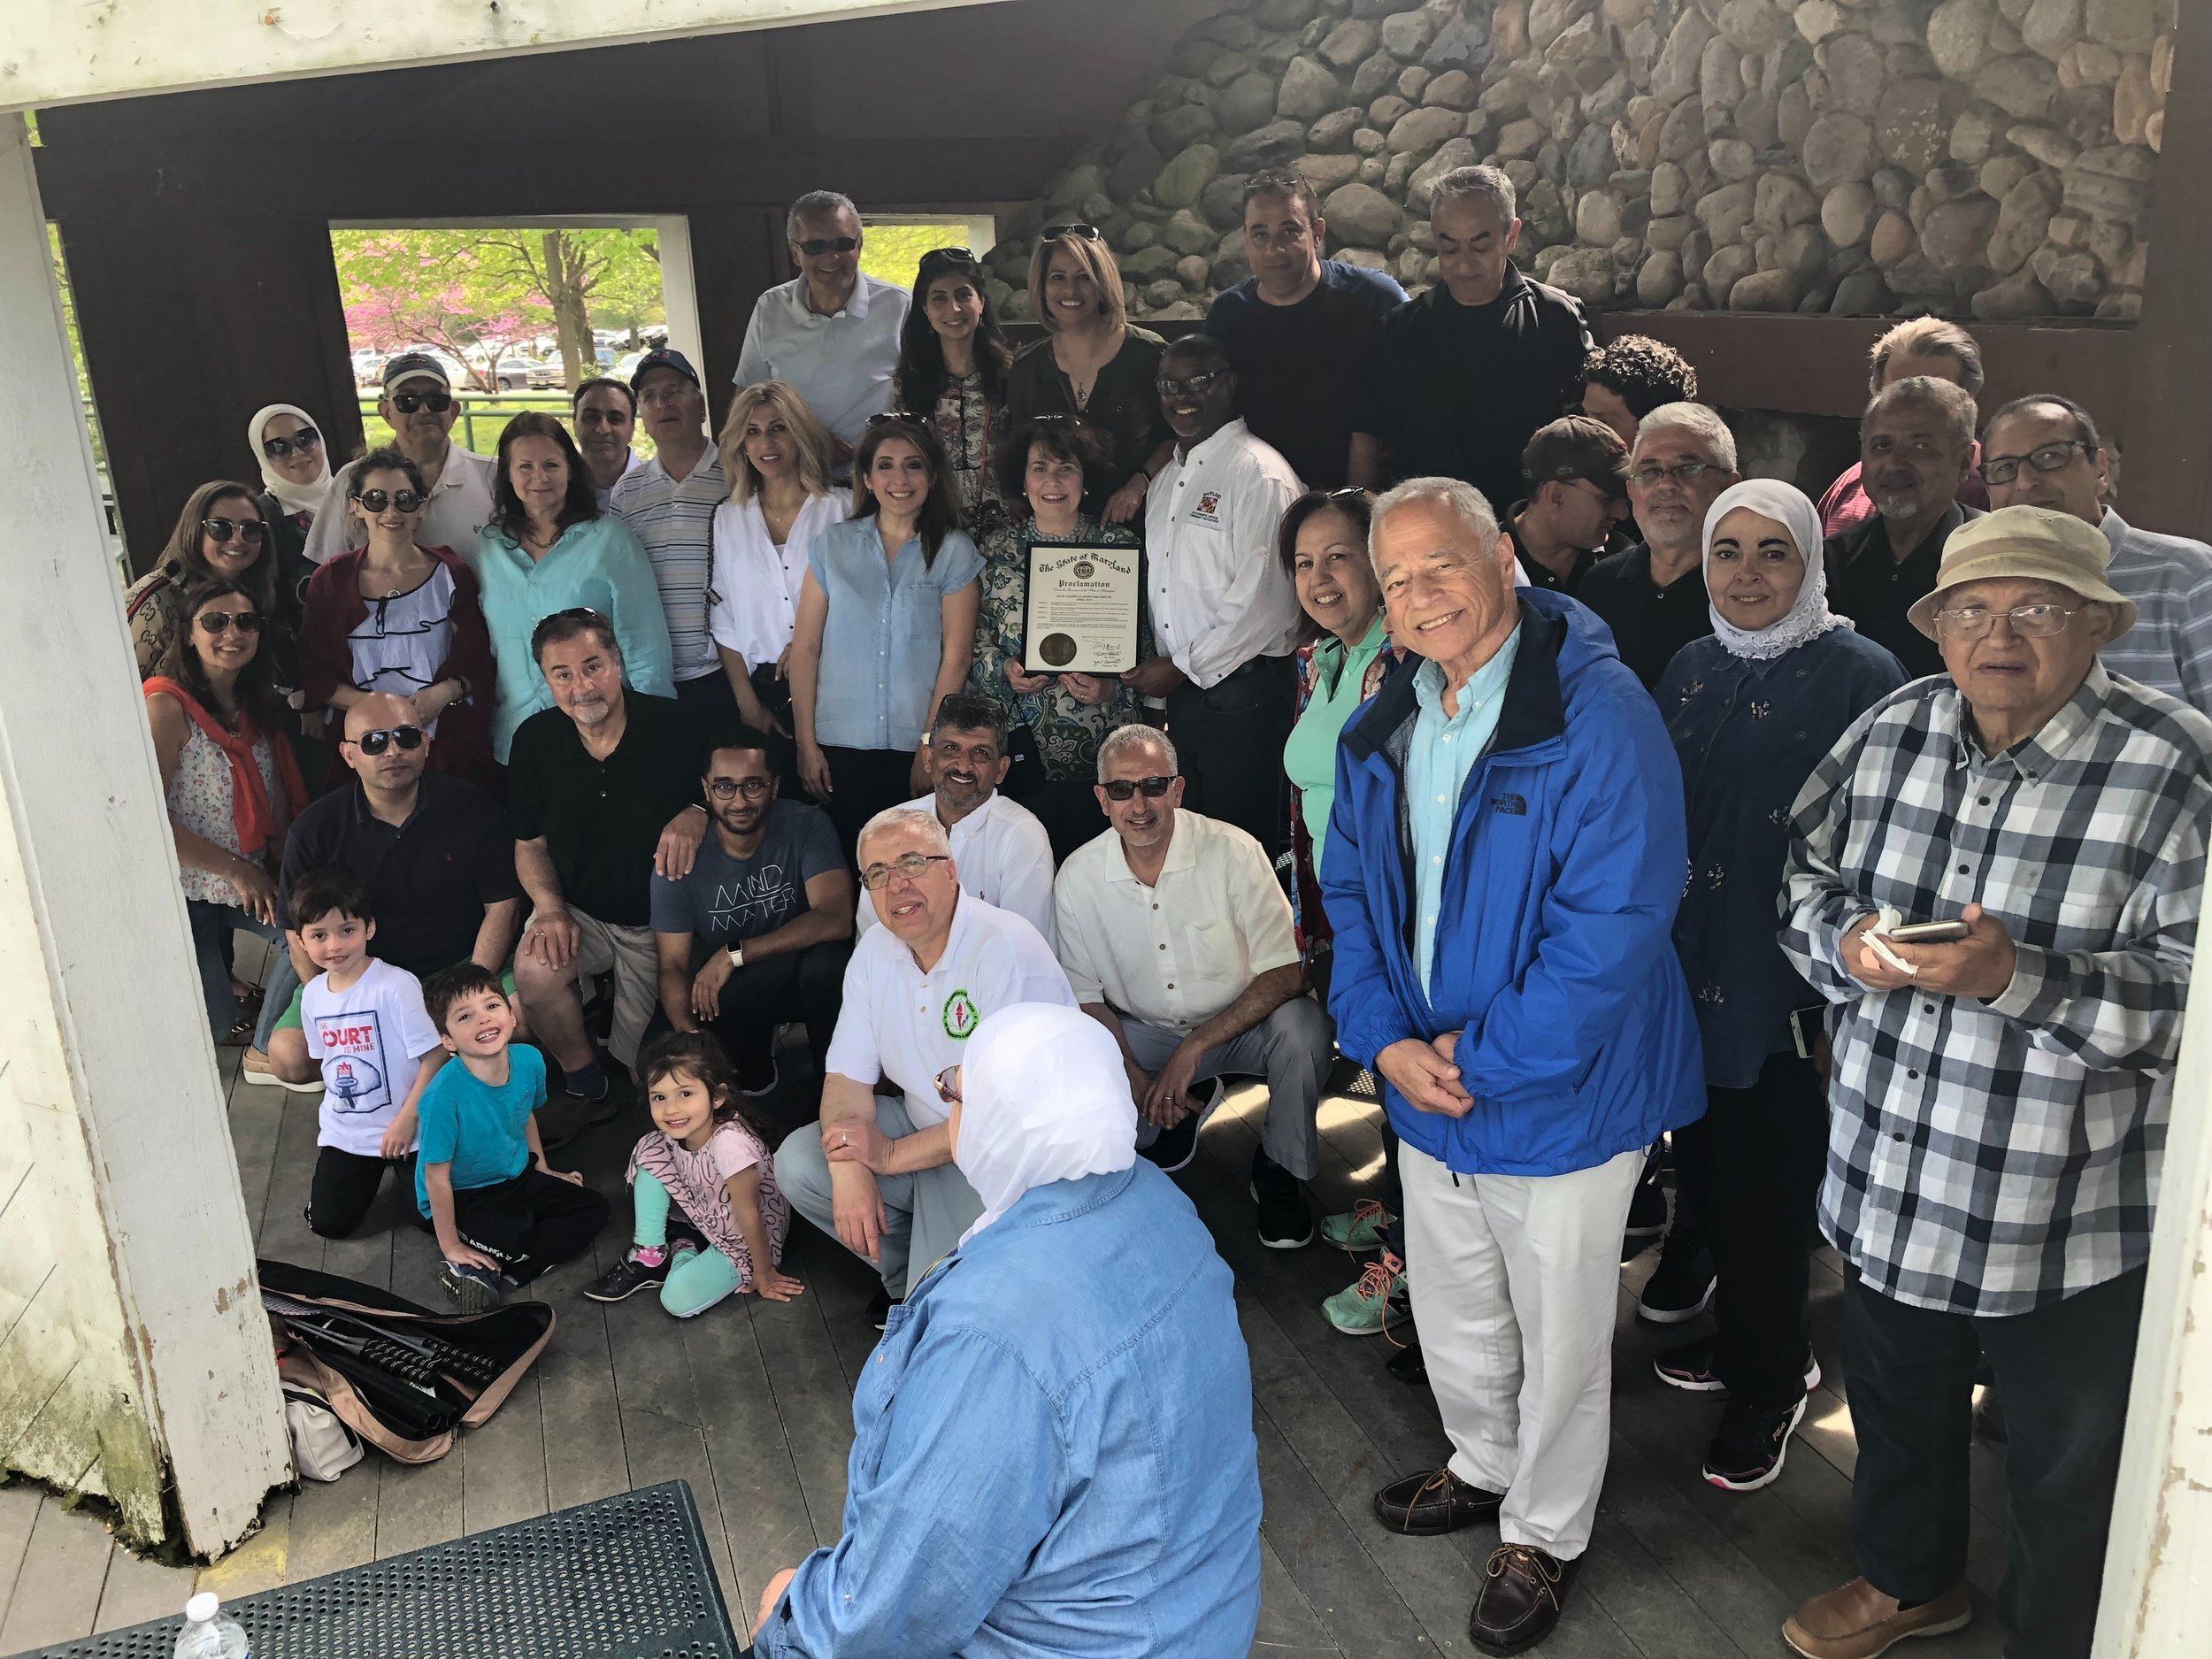 2019 AAAEA-Picnic - Celebrating Arab American Heritage Month